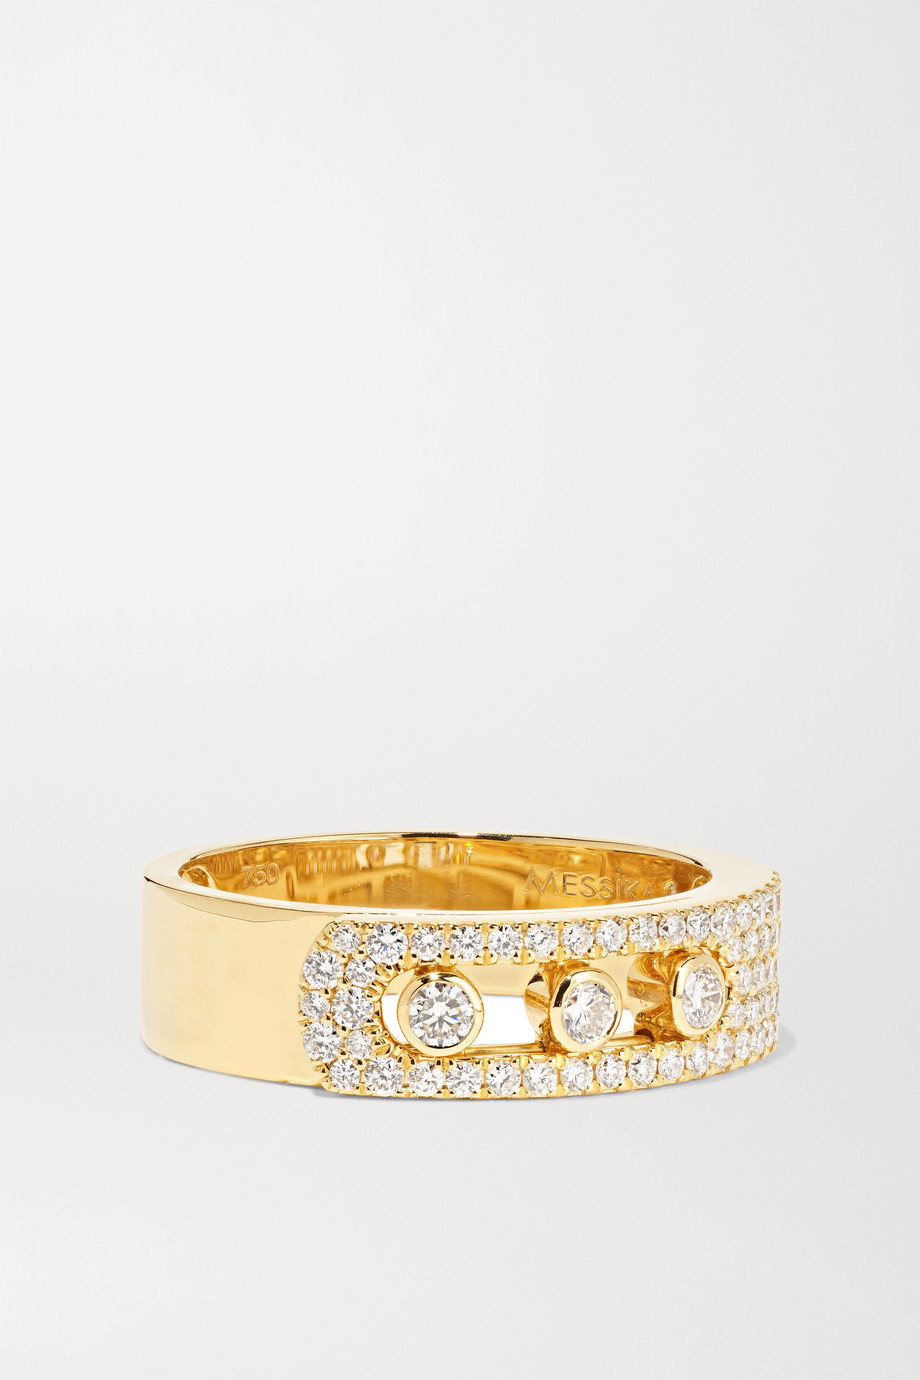 MESSIKA Move Noa 18-karat gold diamond ring